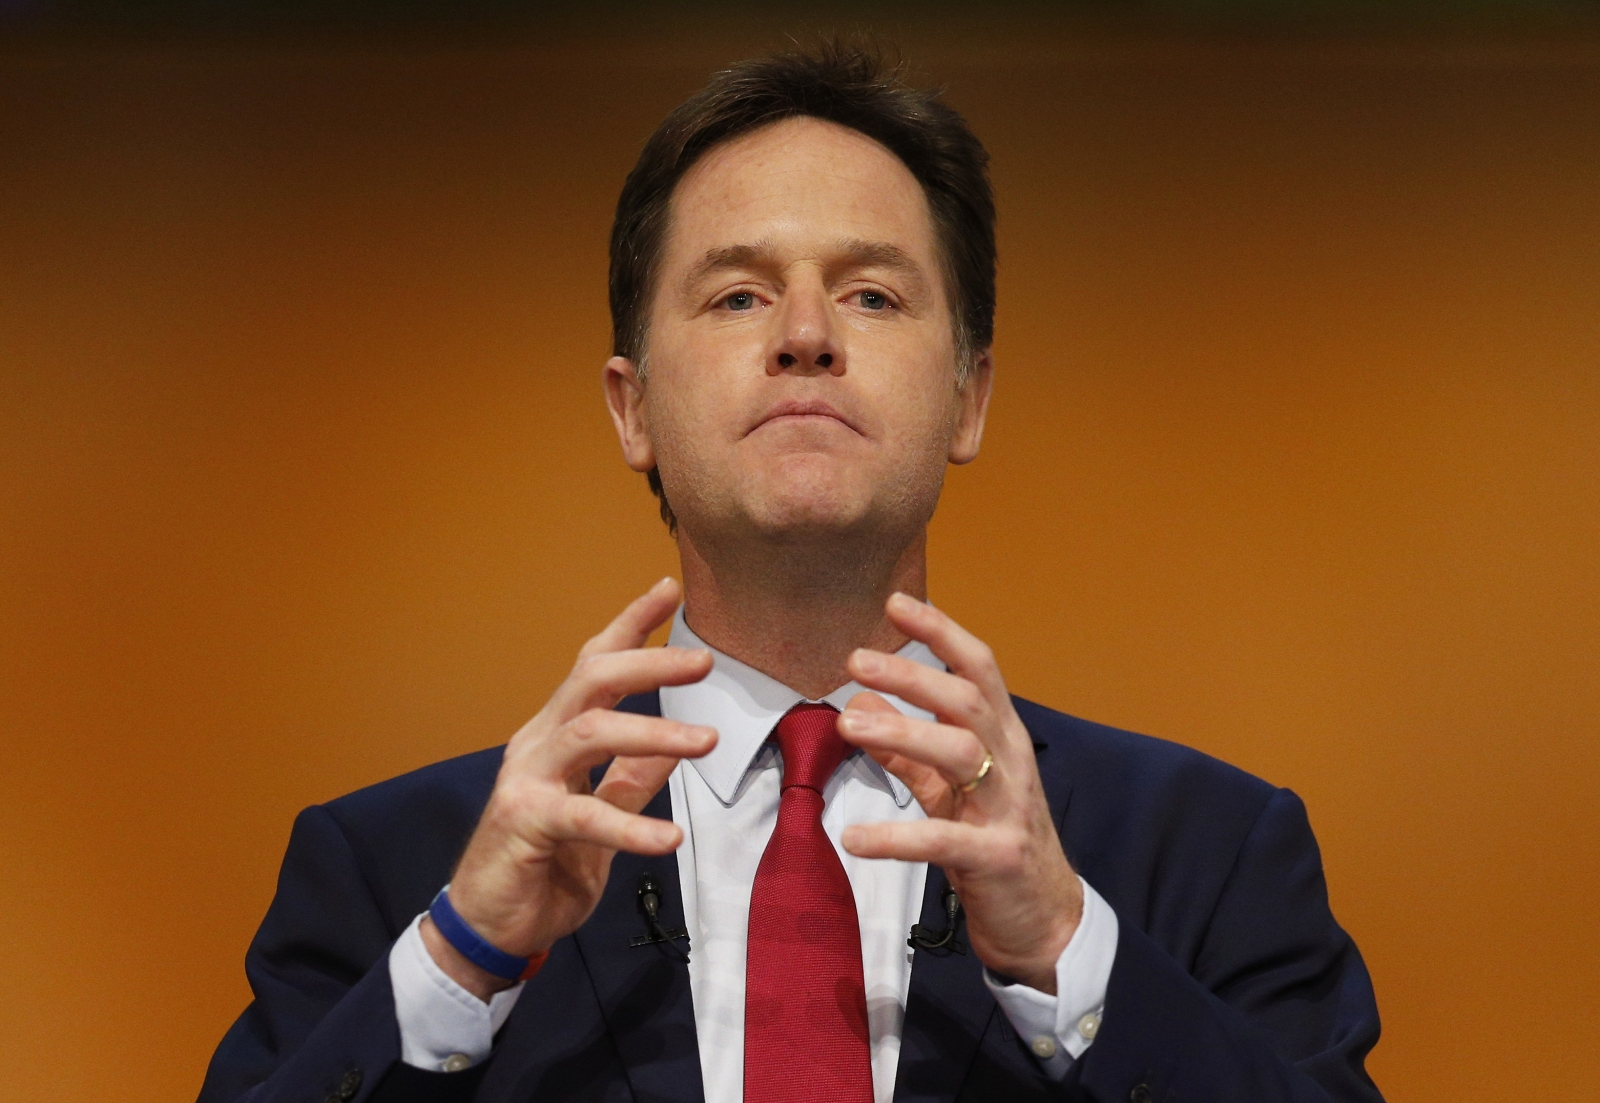 Britain's Deputy Prime Minister, and leader of the Liberal Democrats, Nick Clegg